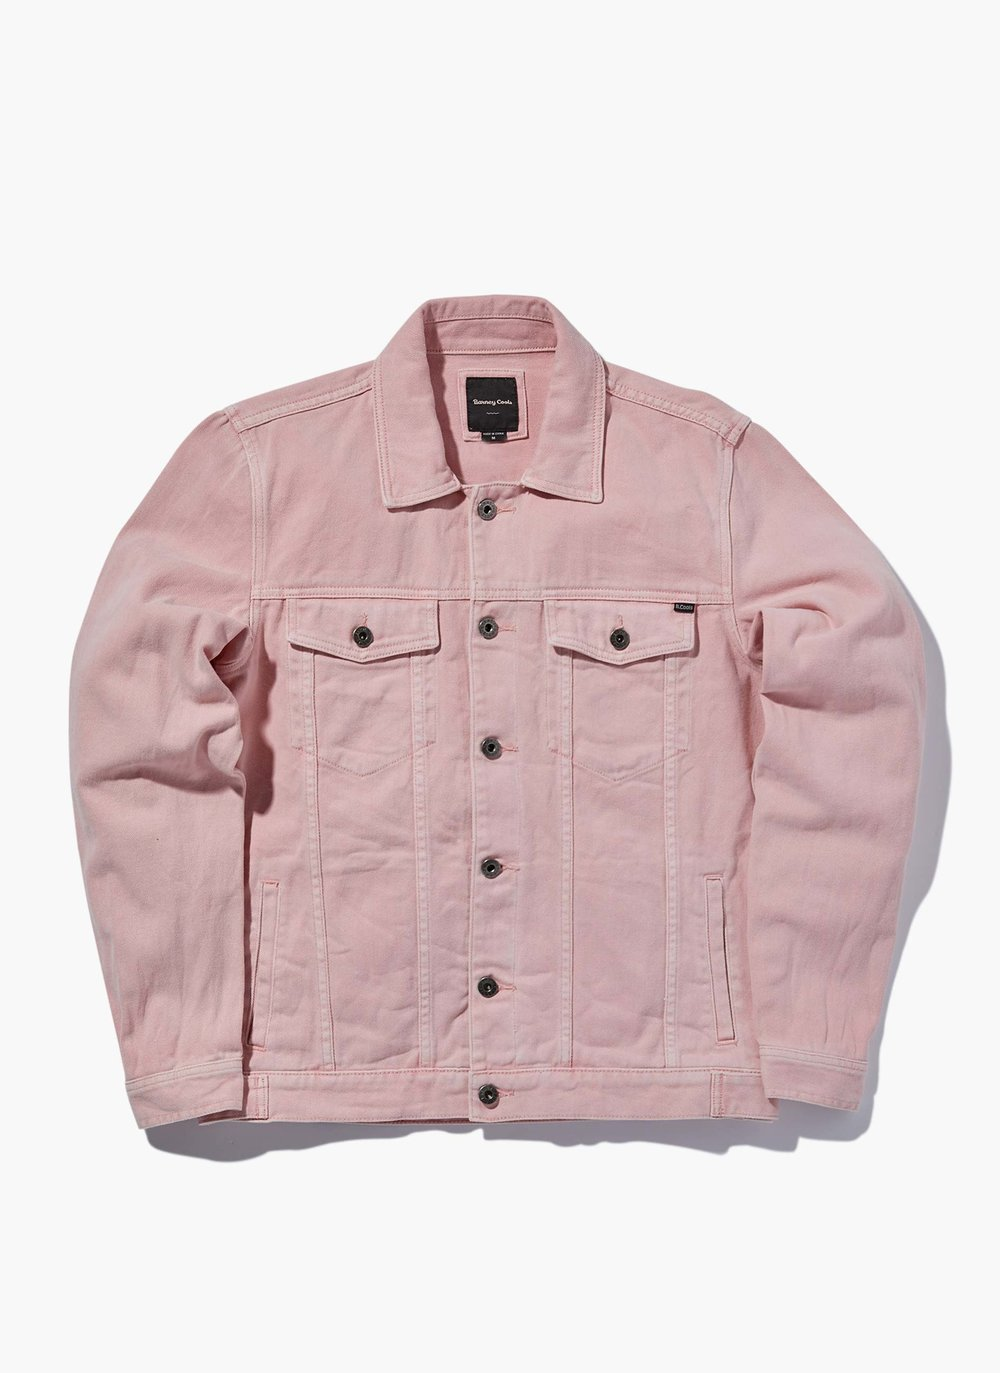 Barney Cools B.Rigid-Jacket-pink.jpg